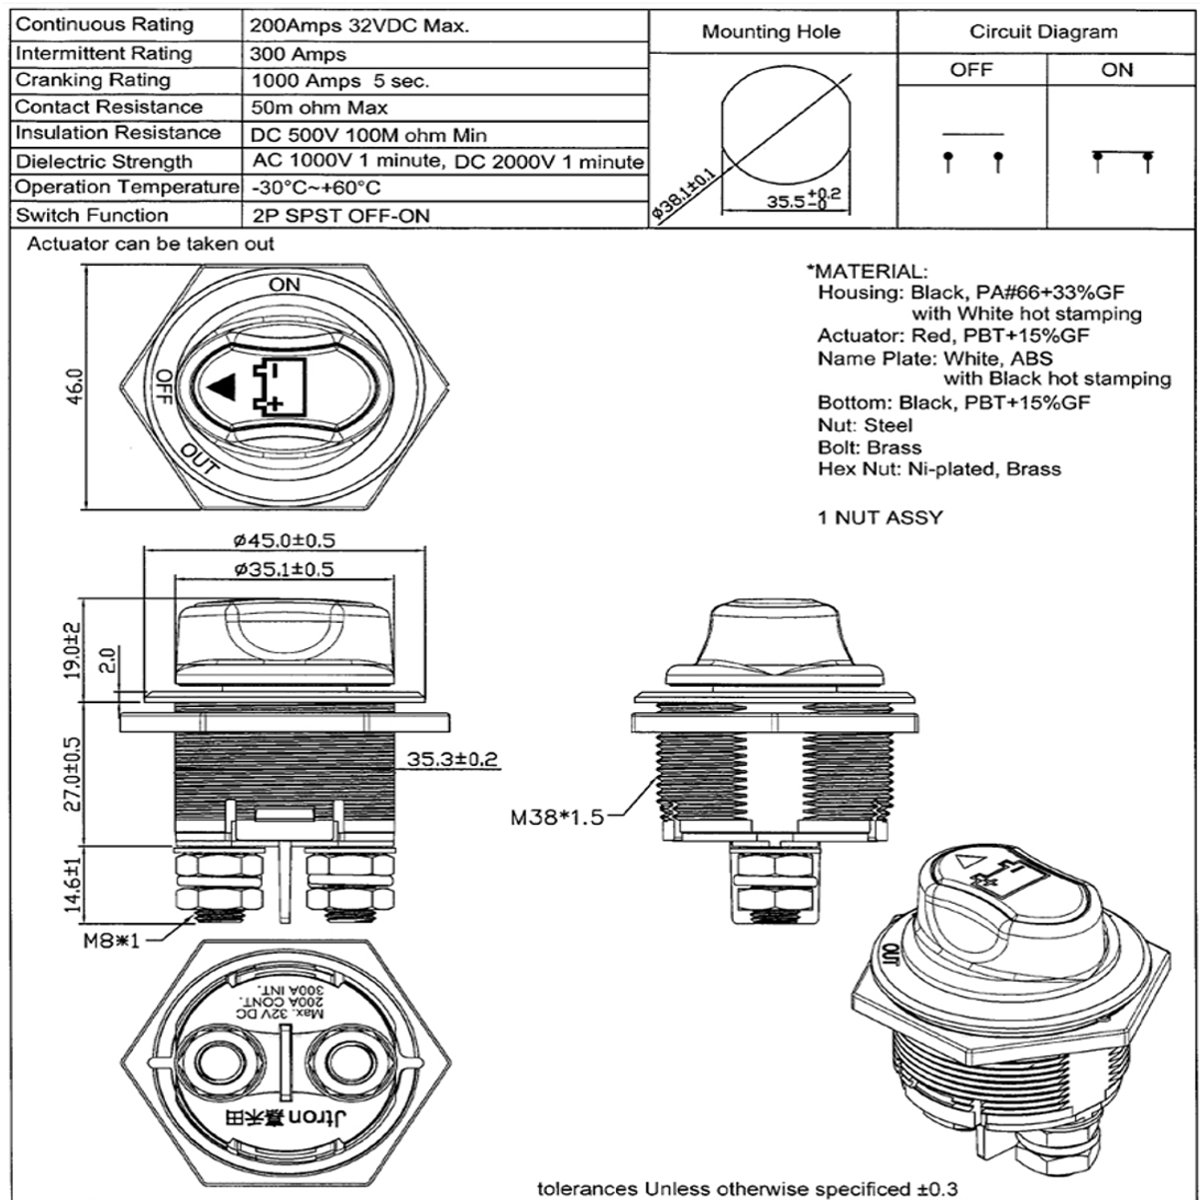 Ke Battery Switch | Wiring Diagram Database on alternator generator, gm alternator diagram, how alternator works diagram, alternator engine diagram, alternator charging system, alternator plug diagram, toyota alternator diagram, alex anderson alternator diagram, alternator parts, alternator relay diagram, 13av60kg011 parts diagram, ford alternator diagram, alternator replacement, alternator winding diagram, alternator fuse diagram, ac compressor wire diagram, generator diagram, dodge alternator diagram, alternator connector diagram, car alternator diagram,